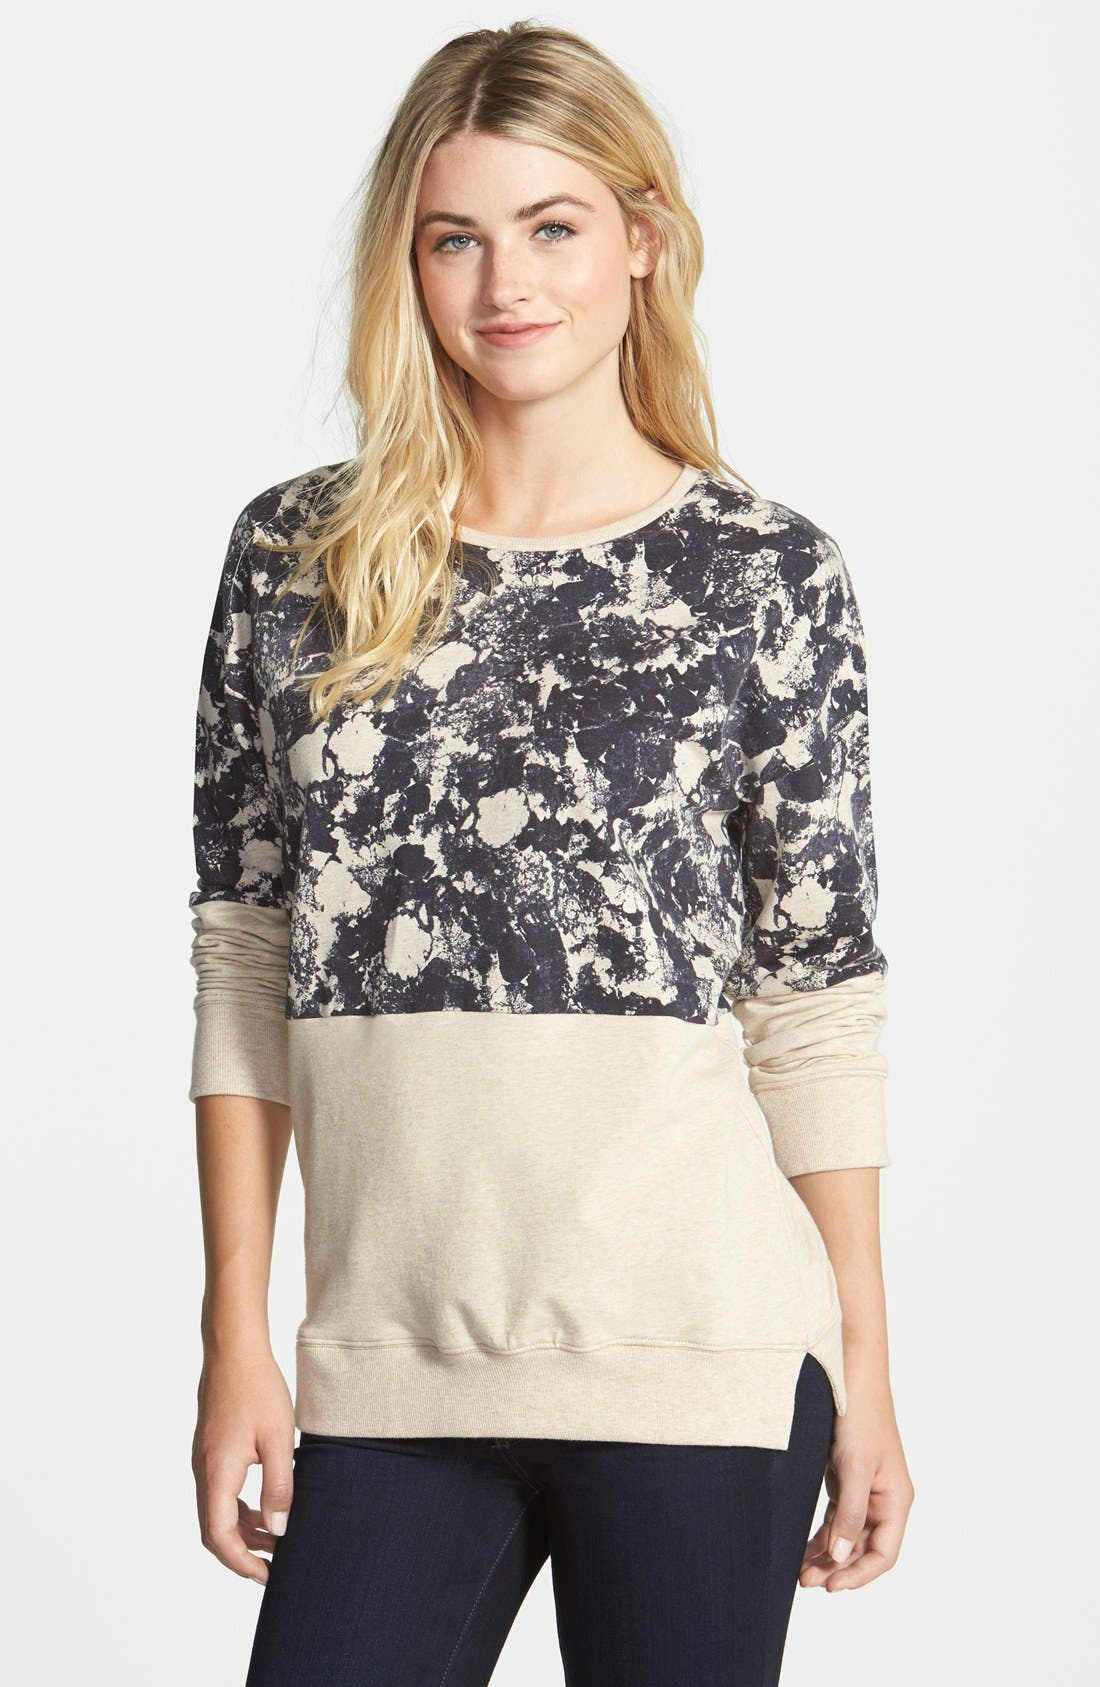 Alternate Image 1 Selected - Two by Vince Camuto Colorblock Print Sweatshirt